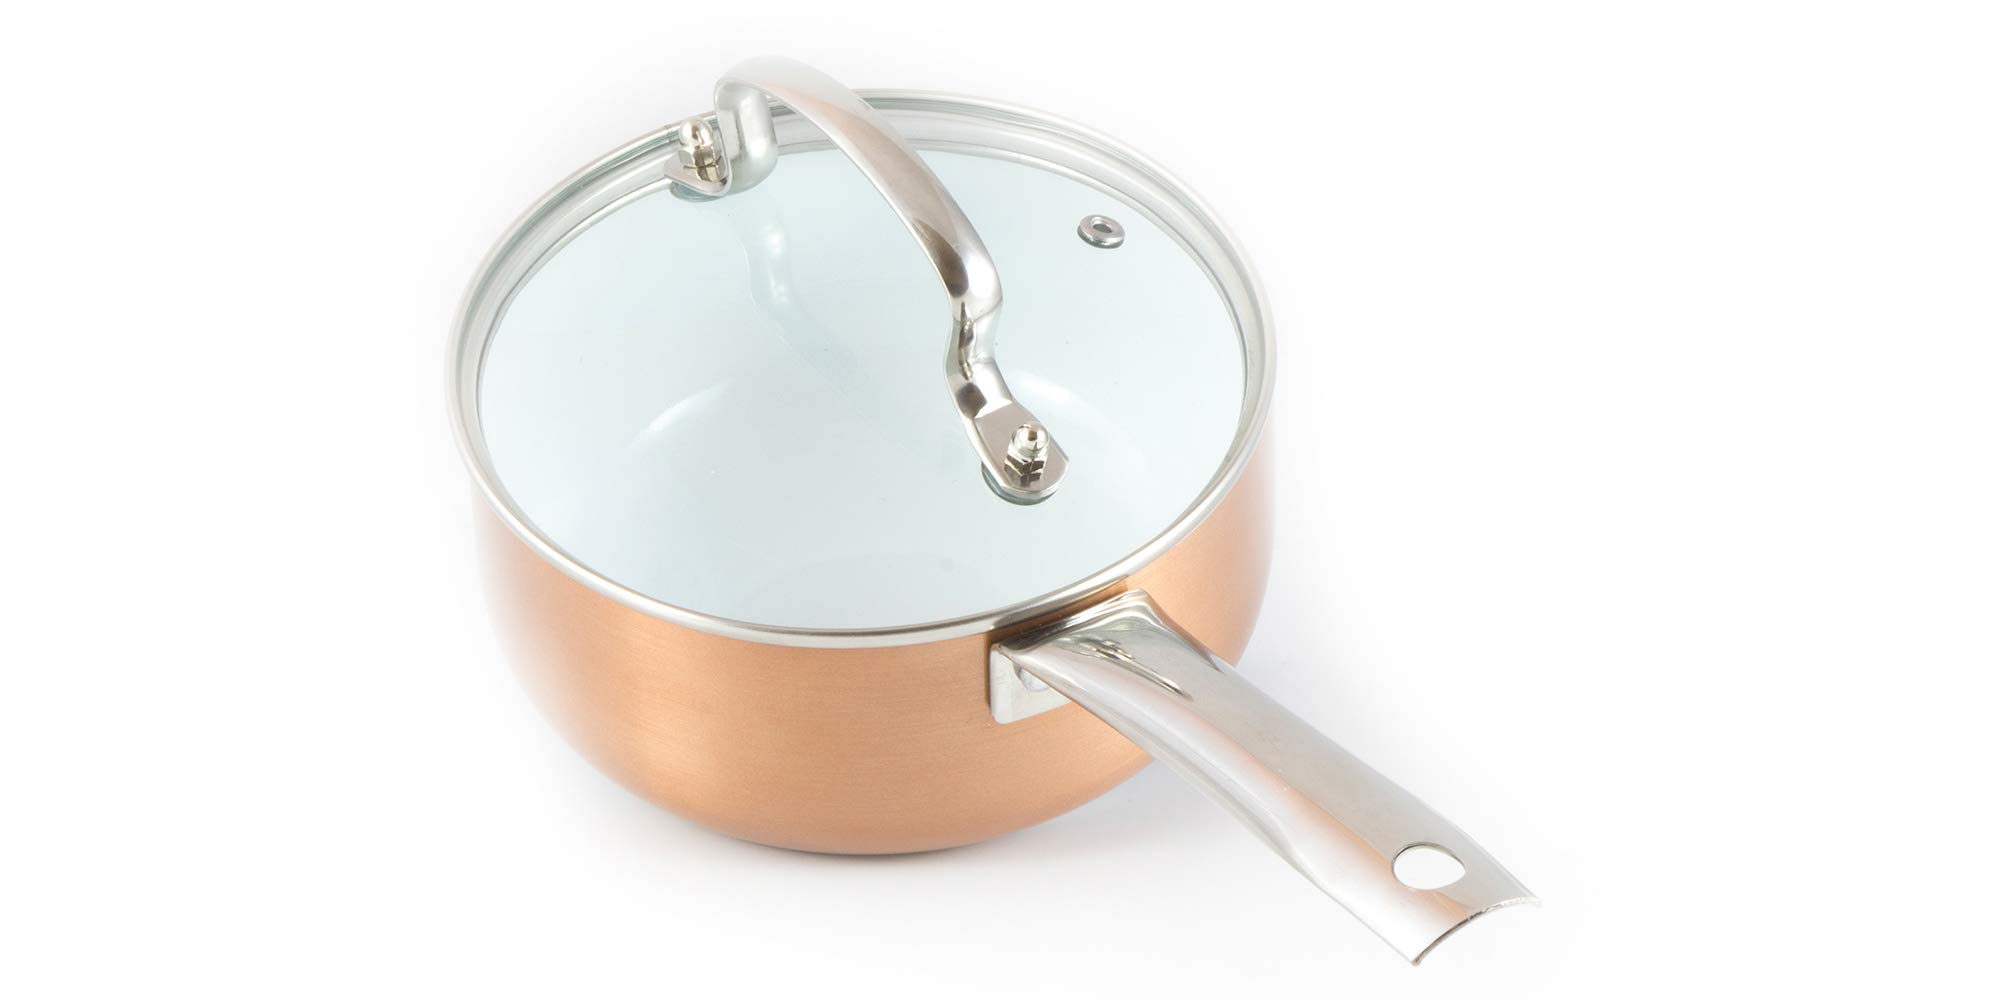 6inch Ceramic Sauce Pan & Glass Lid, 1,5Quart Non Stick Pot, Strong & Resistant Sauce Pot Made of Ceramic & Titanium with Stainless Steel Induction Base. Milk Pot FREE of Toxic Elements.